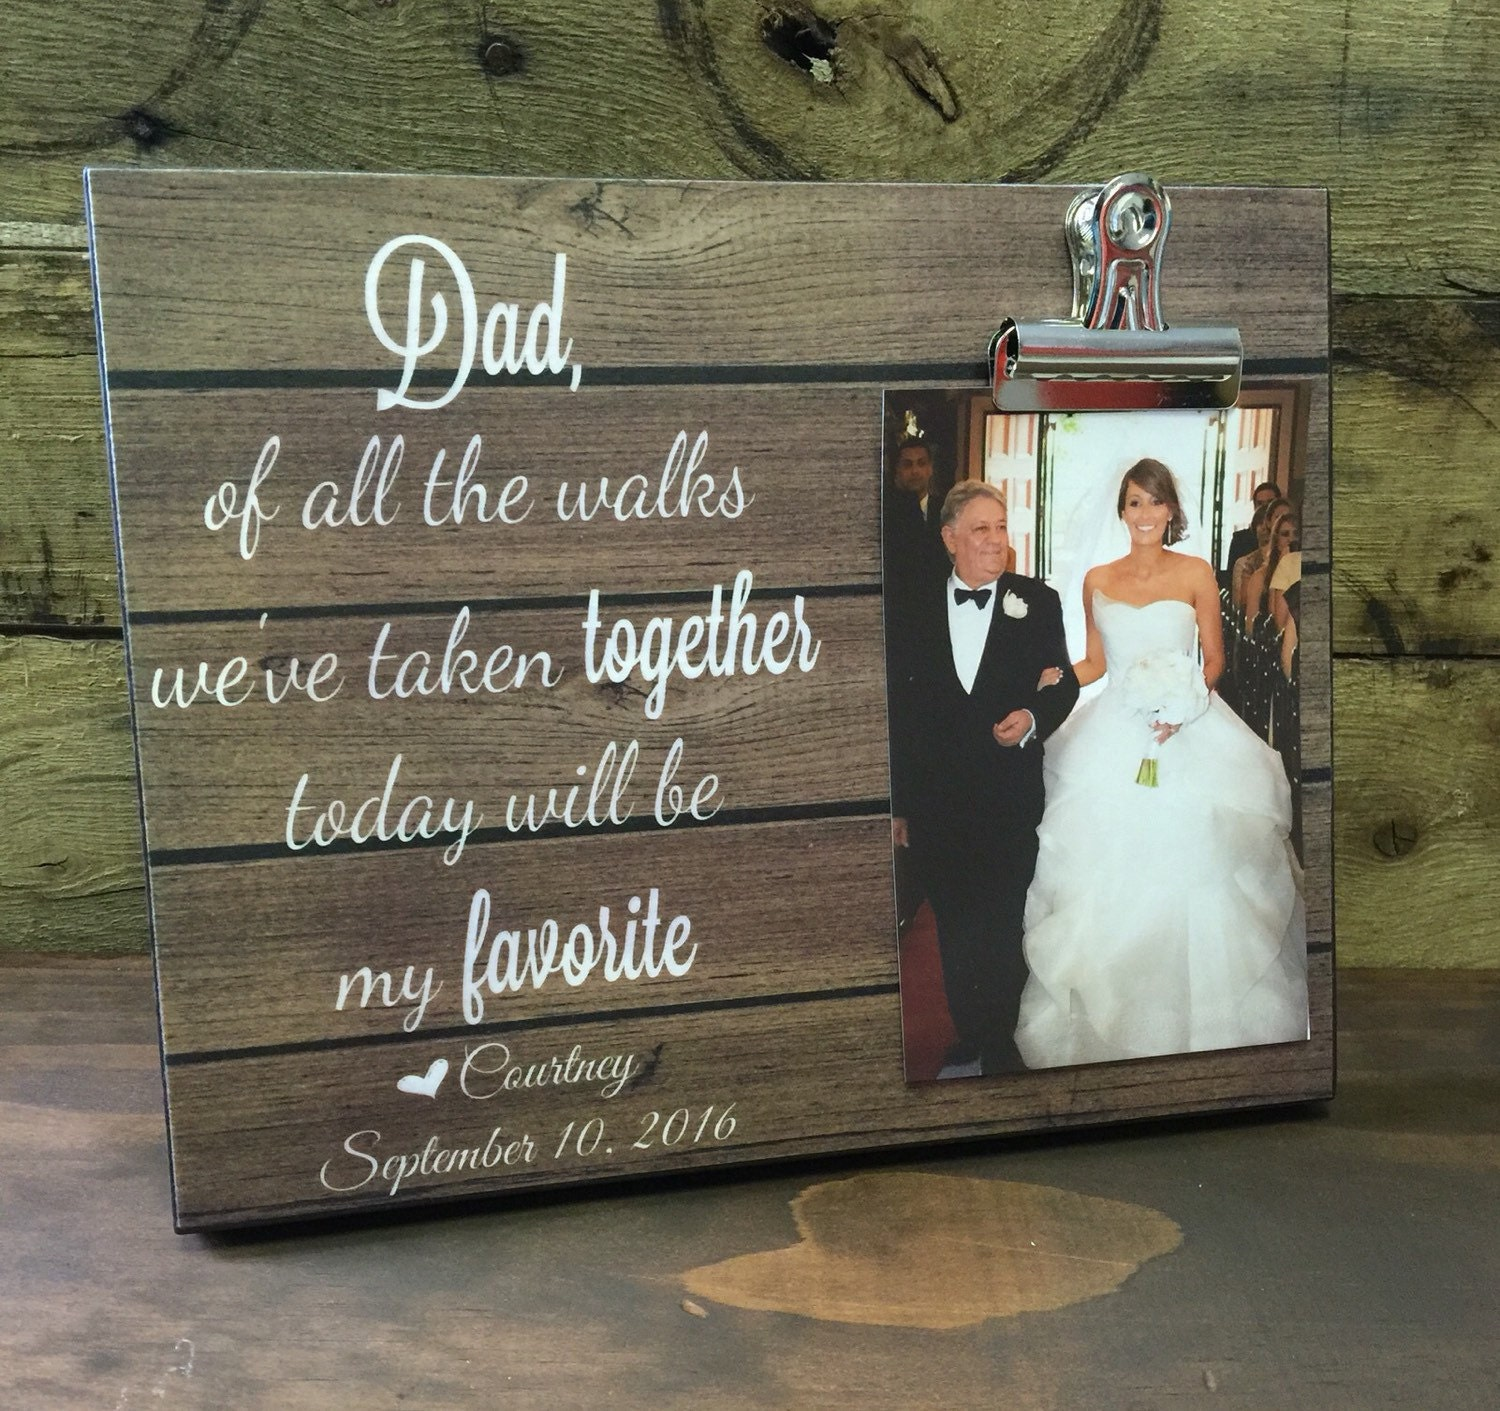 Personalized Wedding Gift Dad Of All The Walks Father Of The